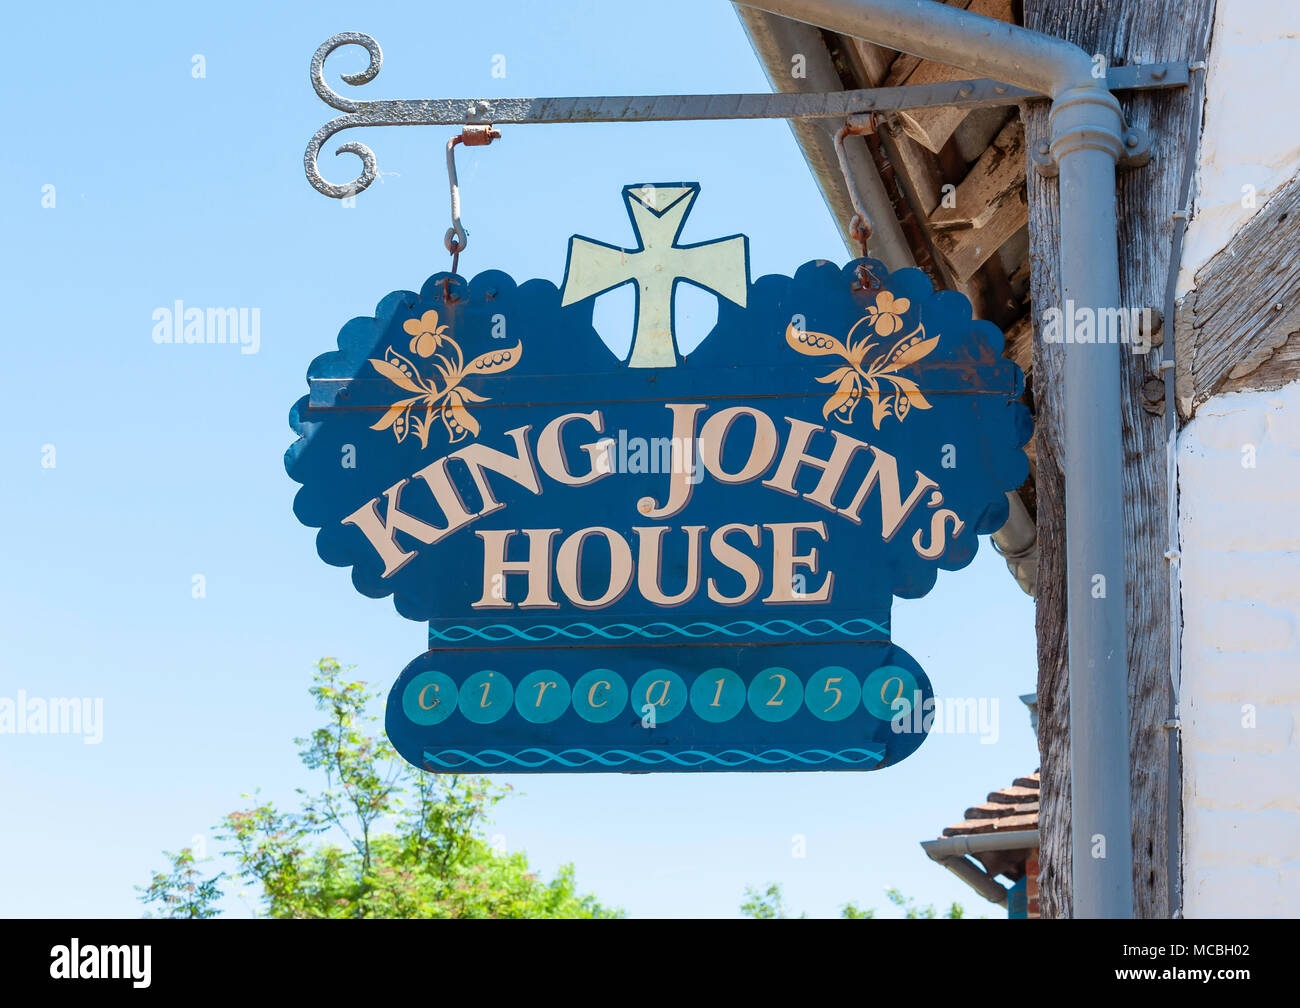 King John's House sign, Church Street, Romsey, Hampshire, England, United Kingdom - Stock Image